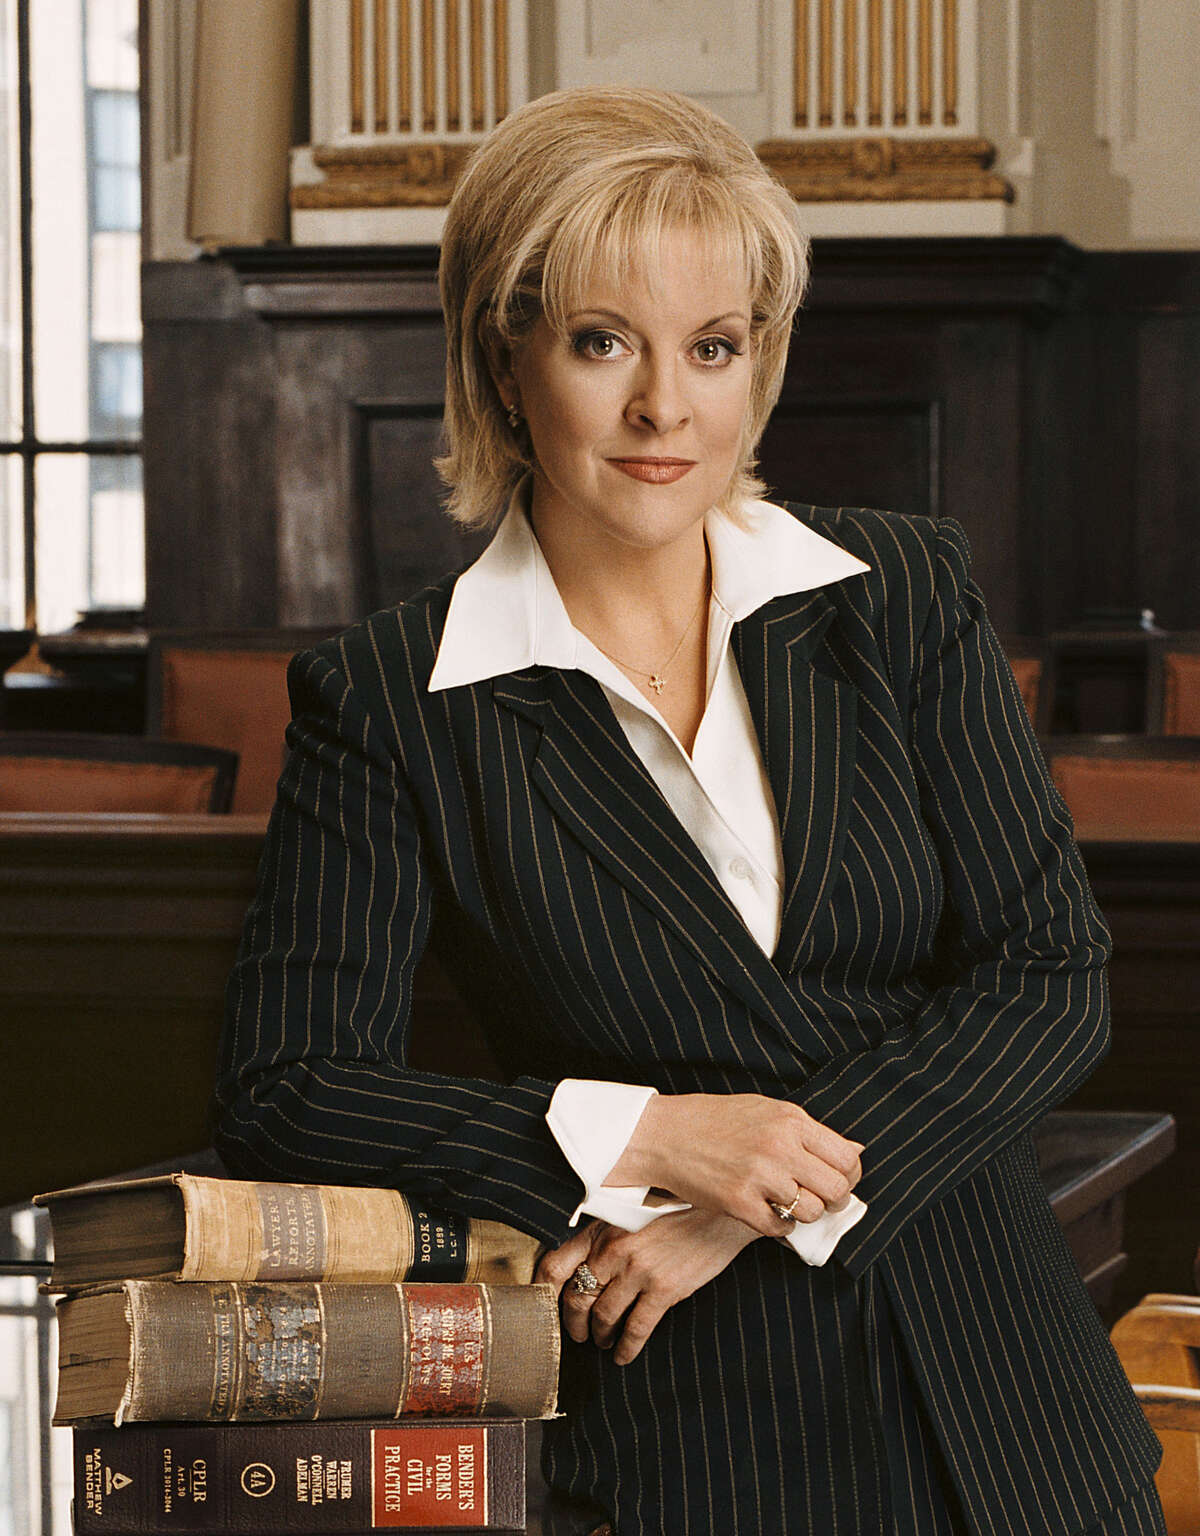 ** FILE **This file photo originally from CNN shows Nancy Grace posed in Yonkers, N.Y., on Jan. 12, 2005. A Stamford attorney working for Michael Skakel filed suit against Grace, (AP Photo/CNN, Kyle Christy)